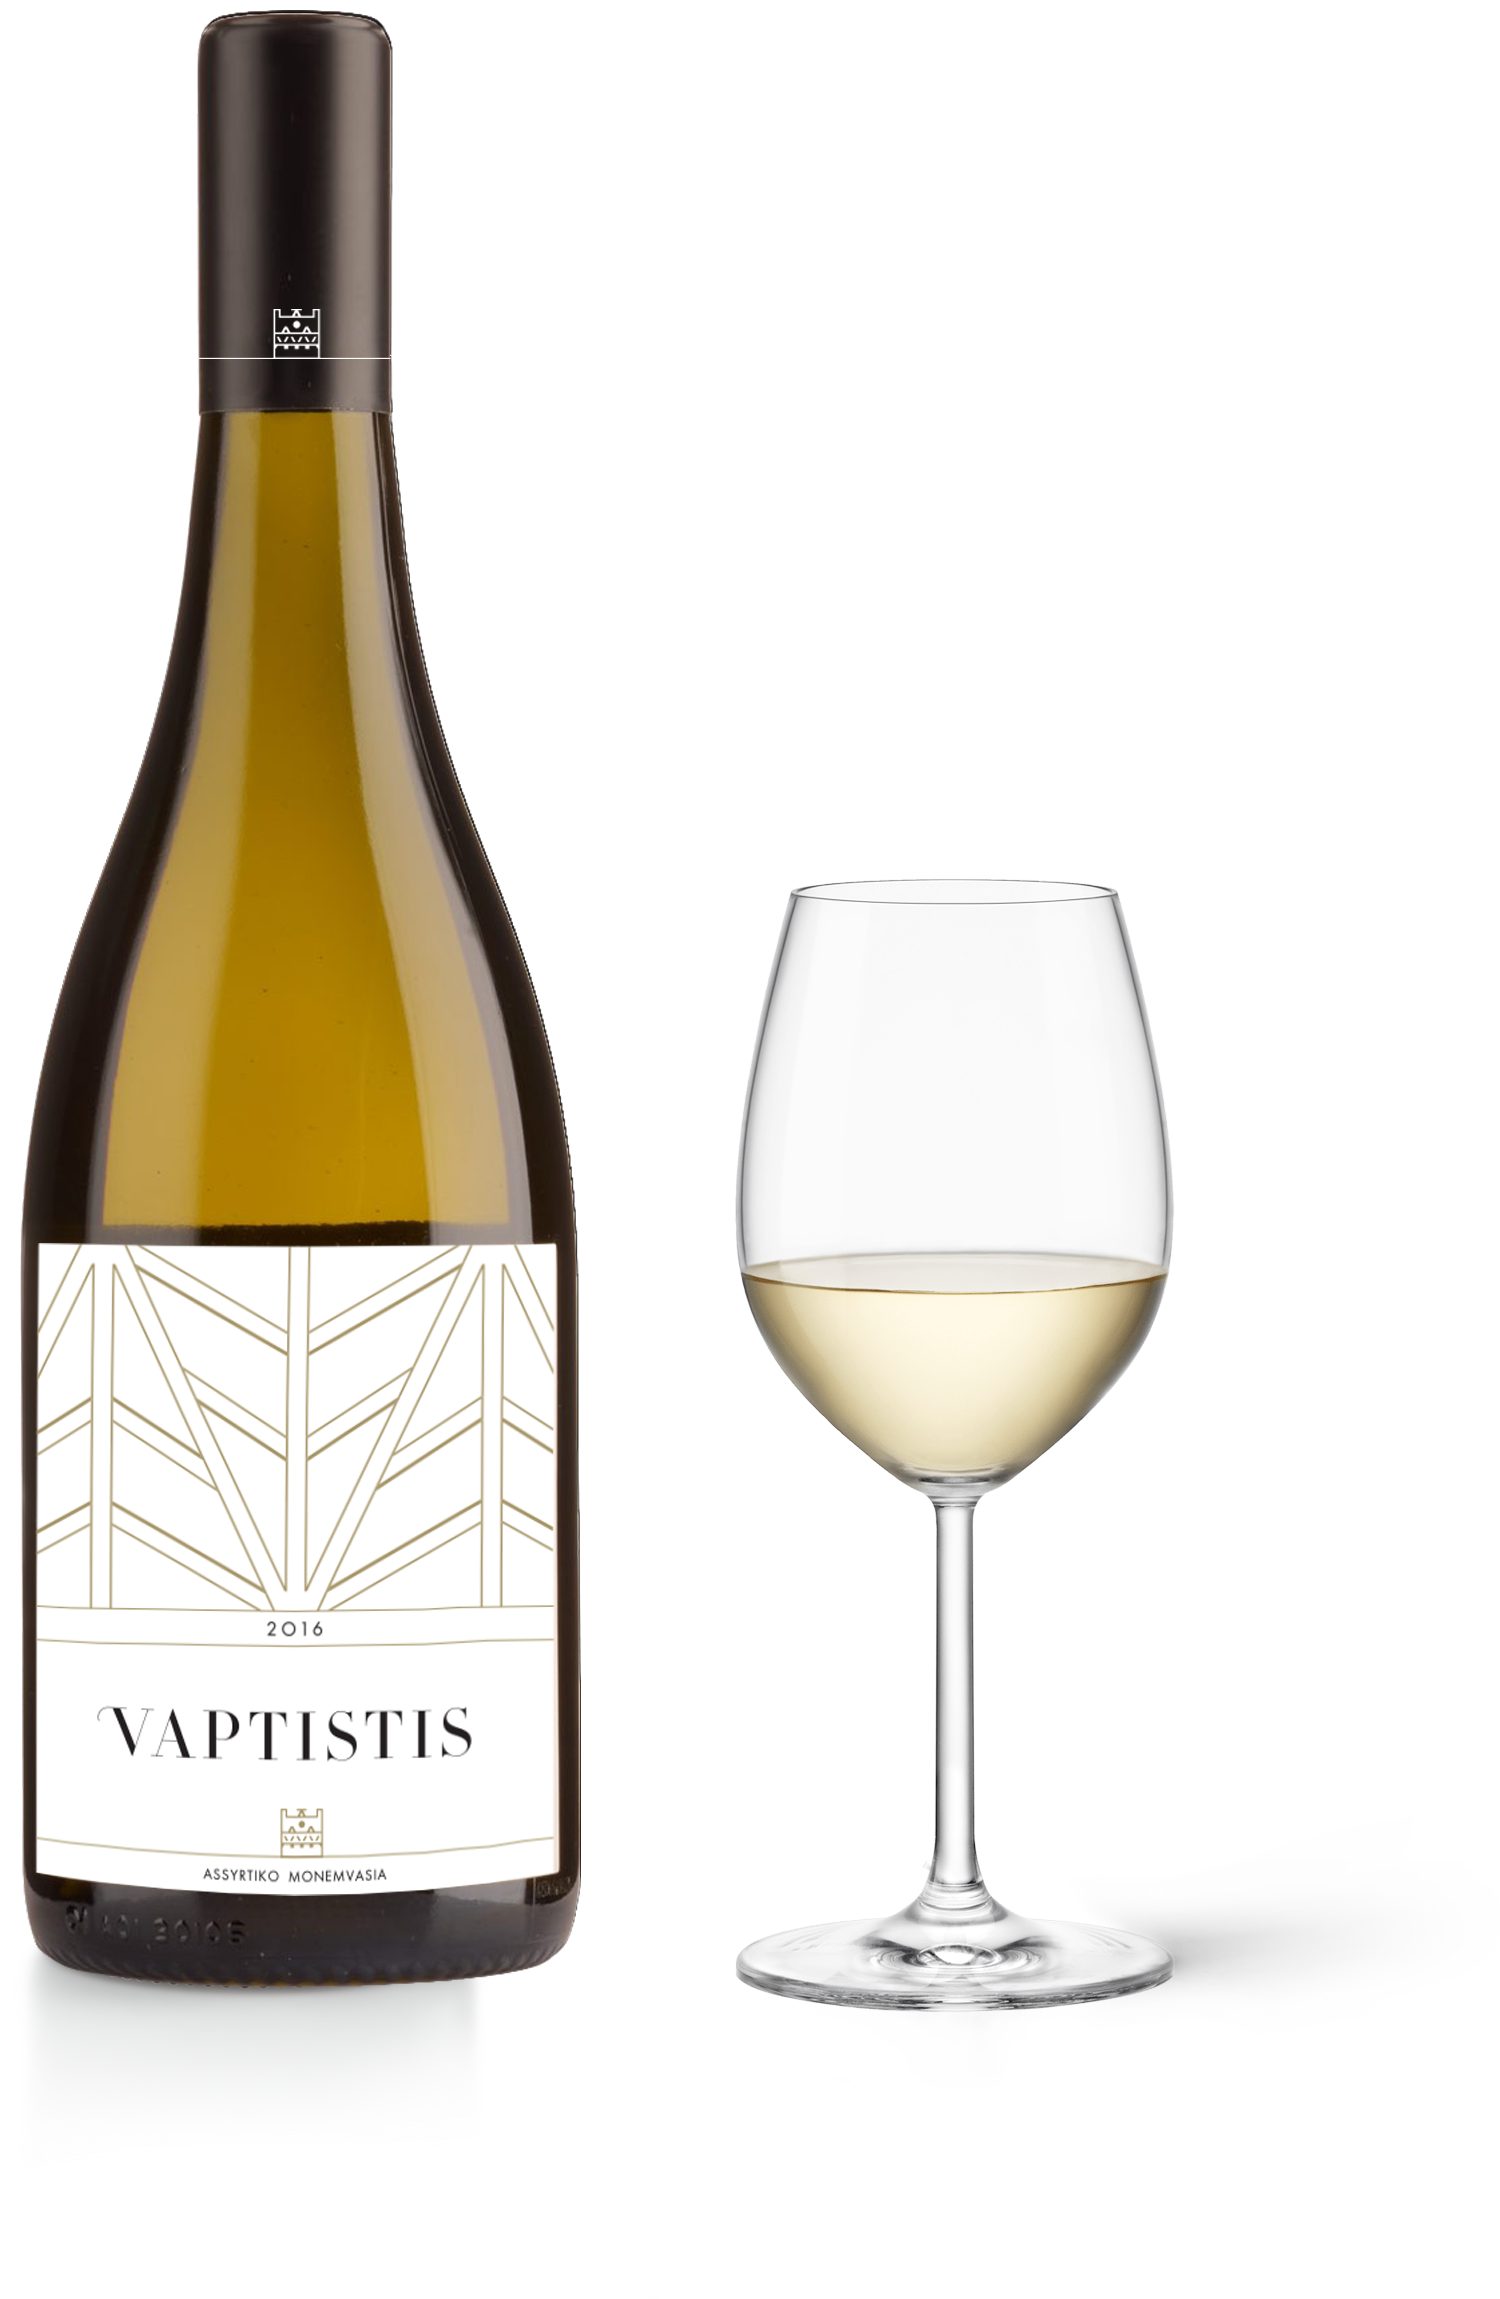 vaptistis white bottle glass